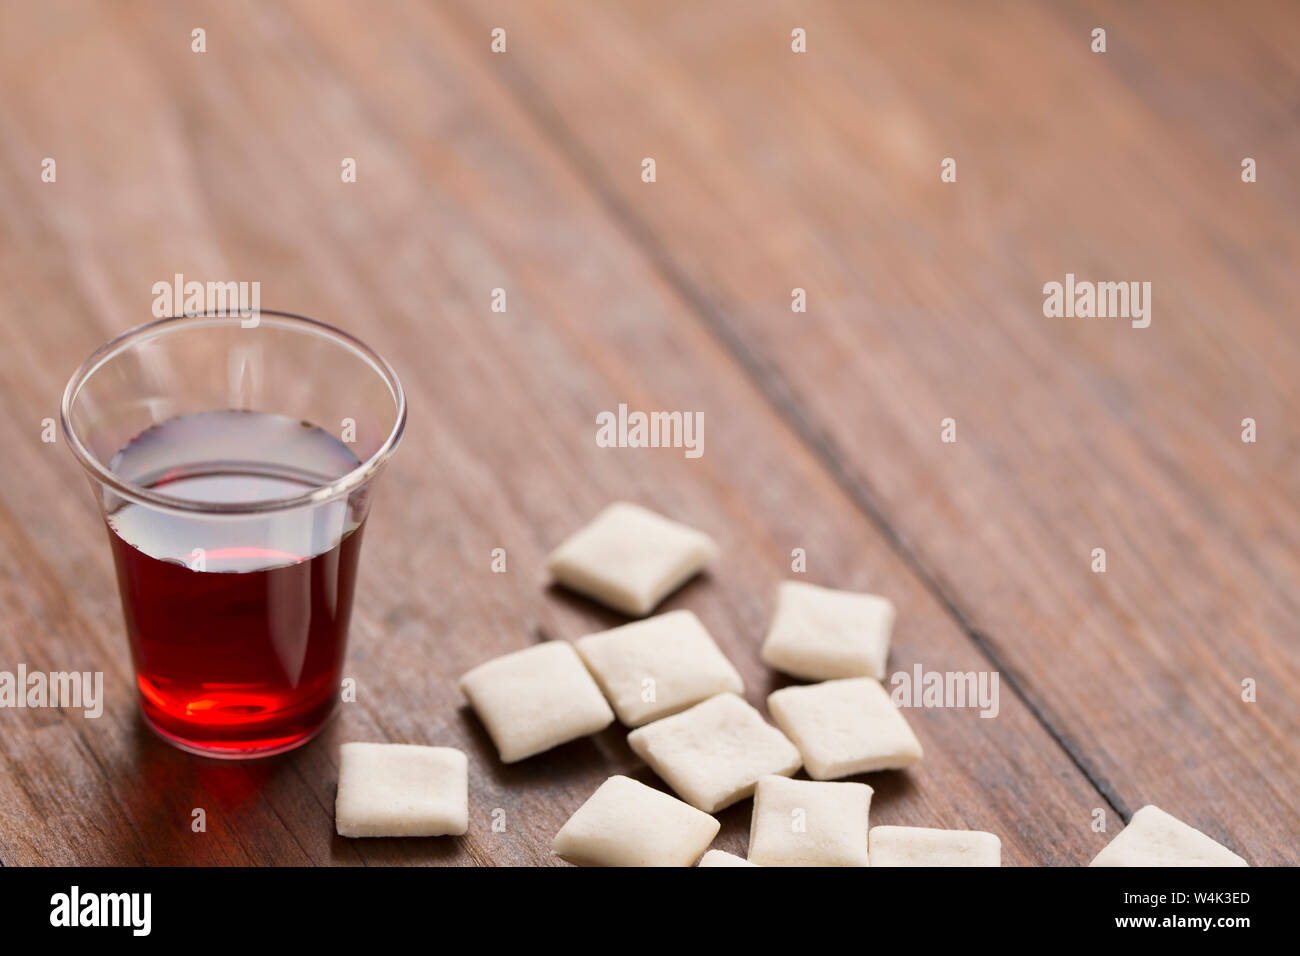 Communion Cup and Bread Stock Photo: 261033989 - Alamy